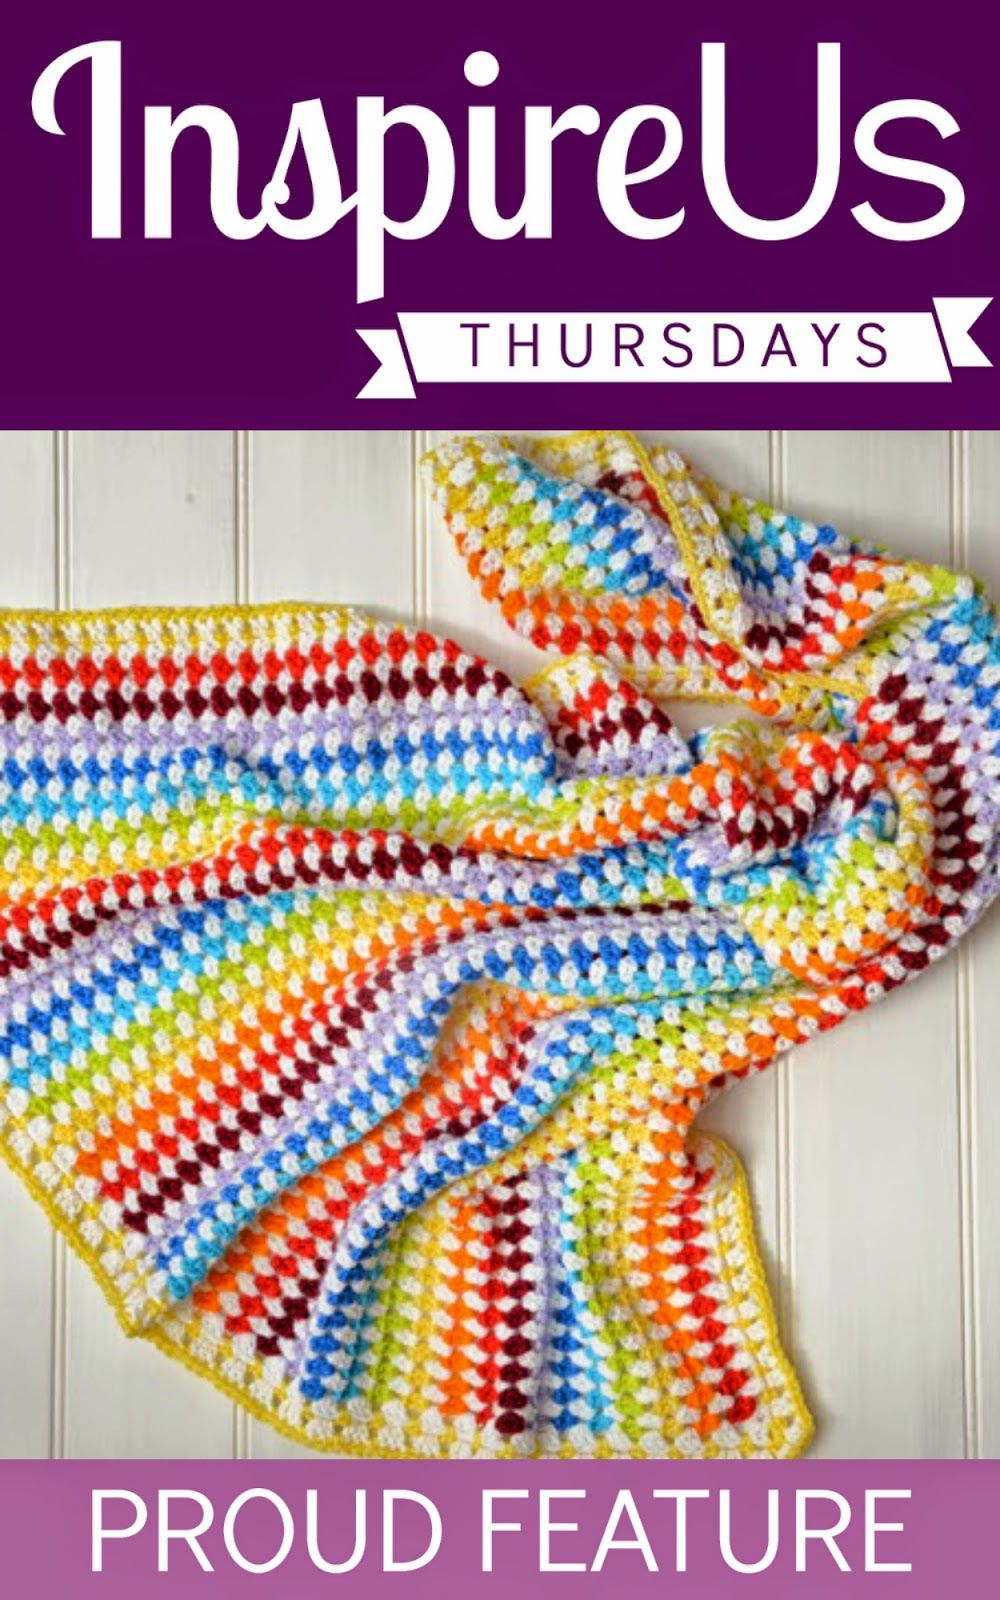 Inspire Us Thursday: Sew Needle Stitch Hook | September 25 Feature | The Inspired Wren